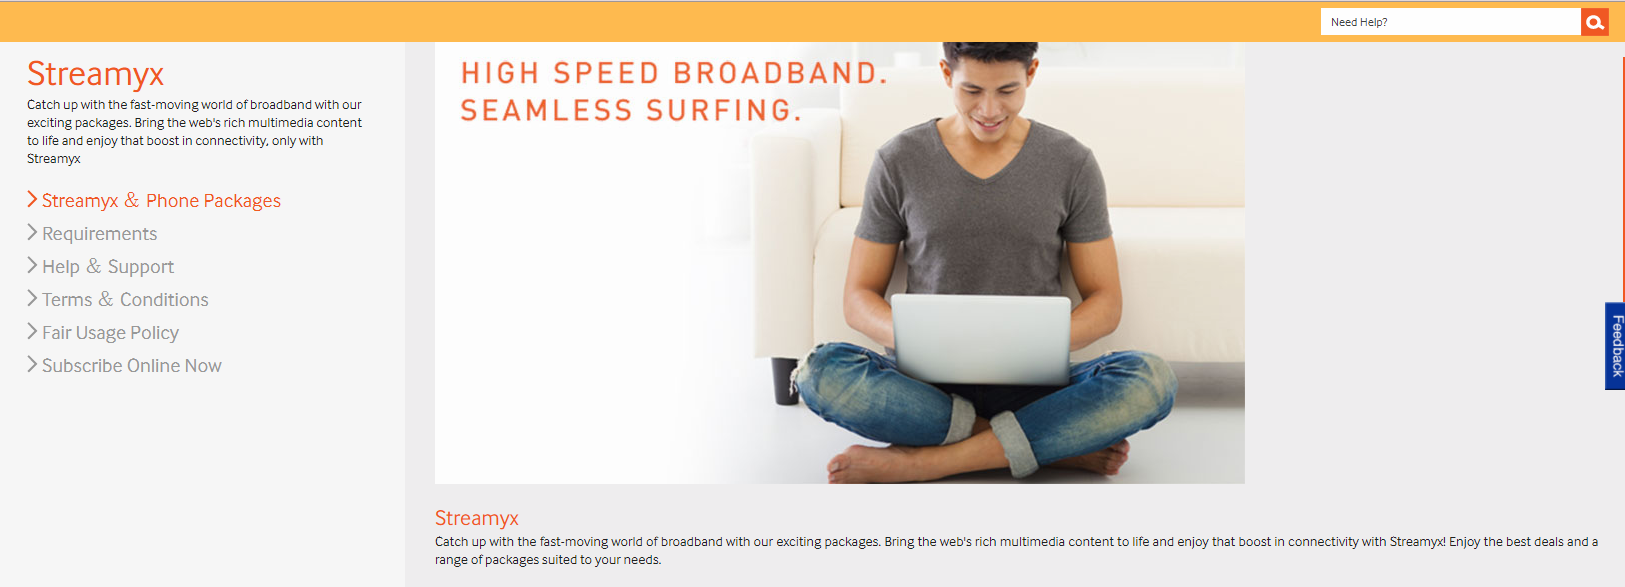 Streamyx broadband internet